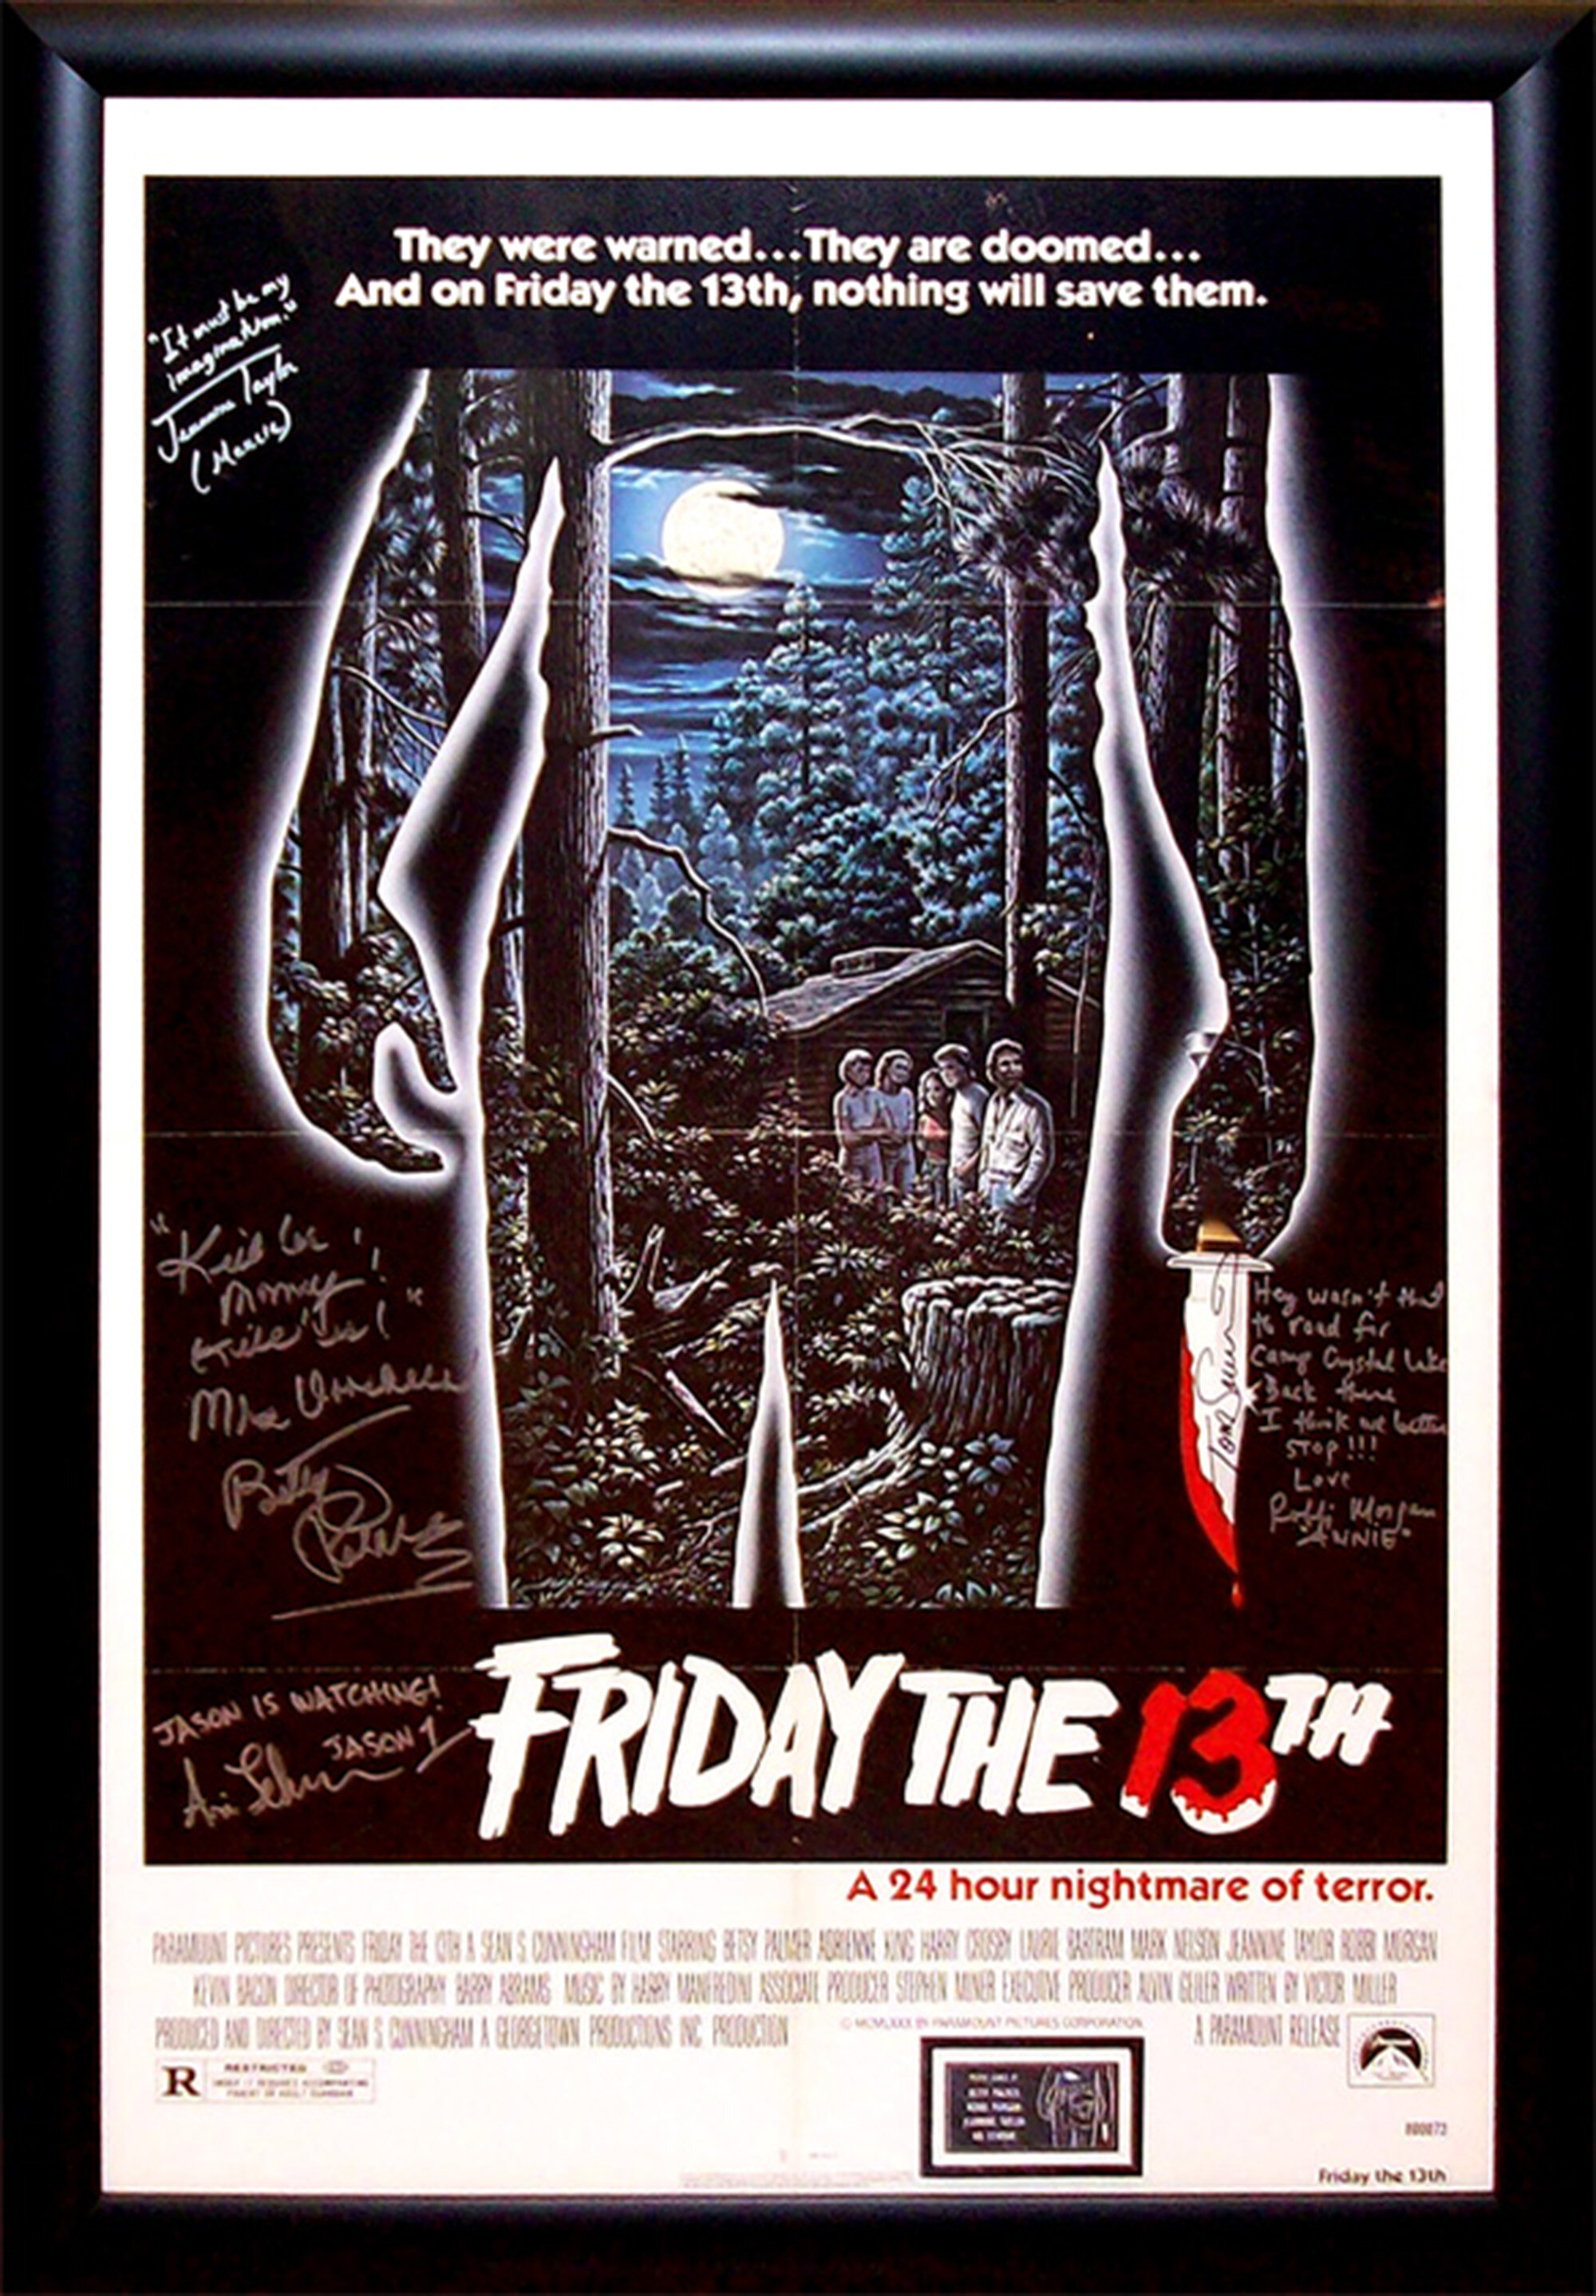 friday-the-13th-framed-autographed-movie-poster.